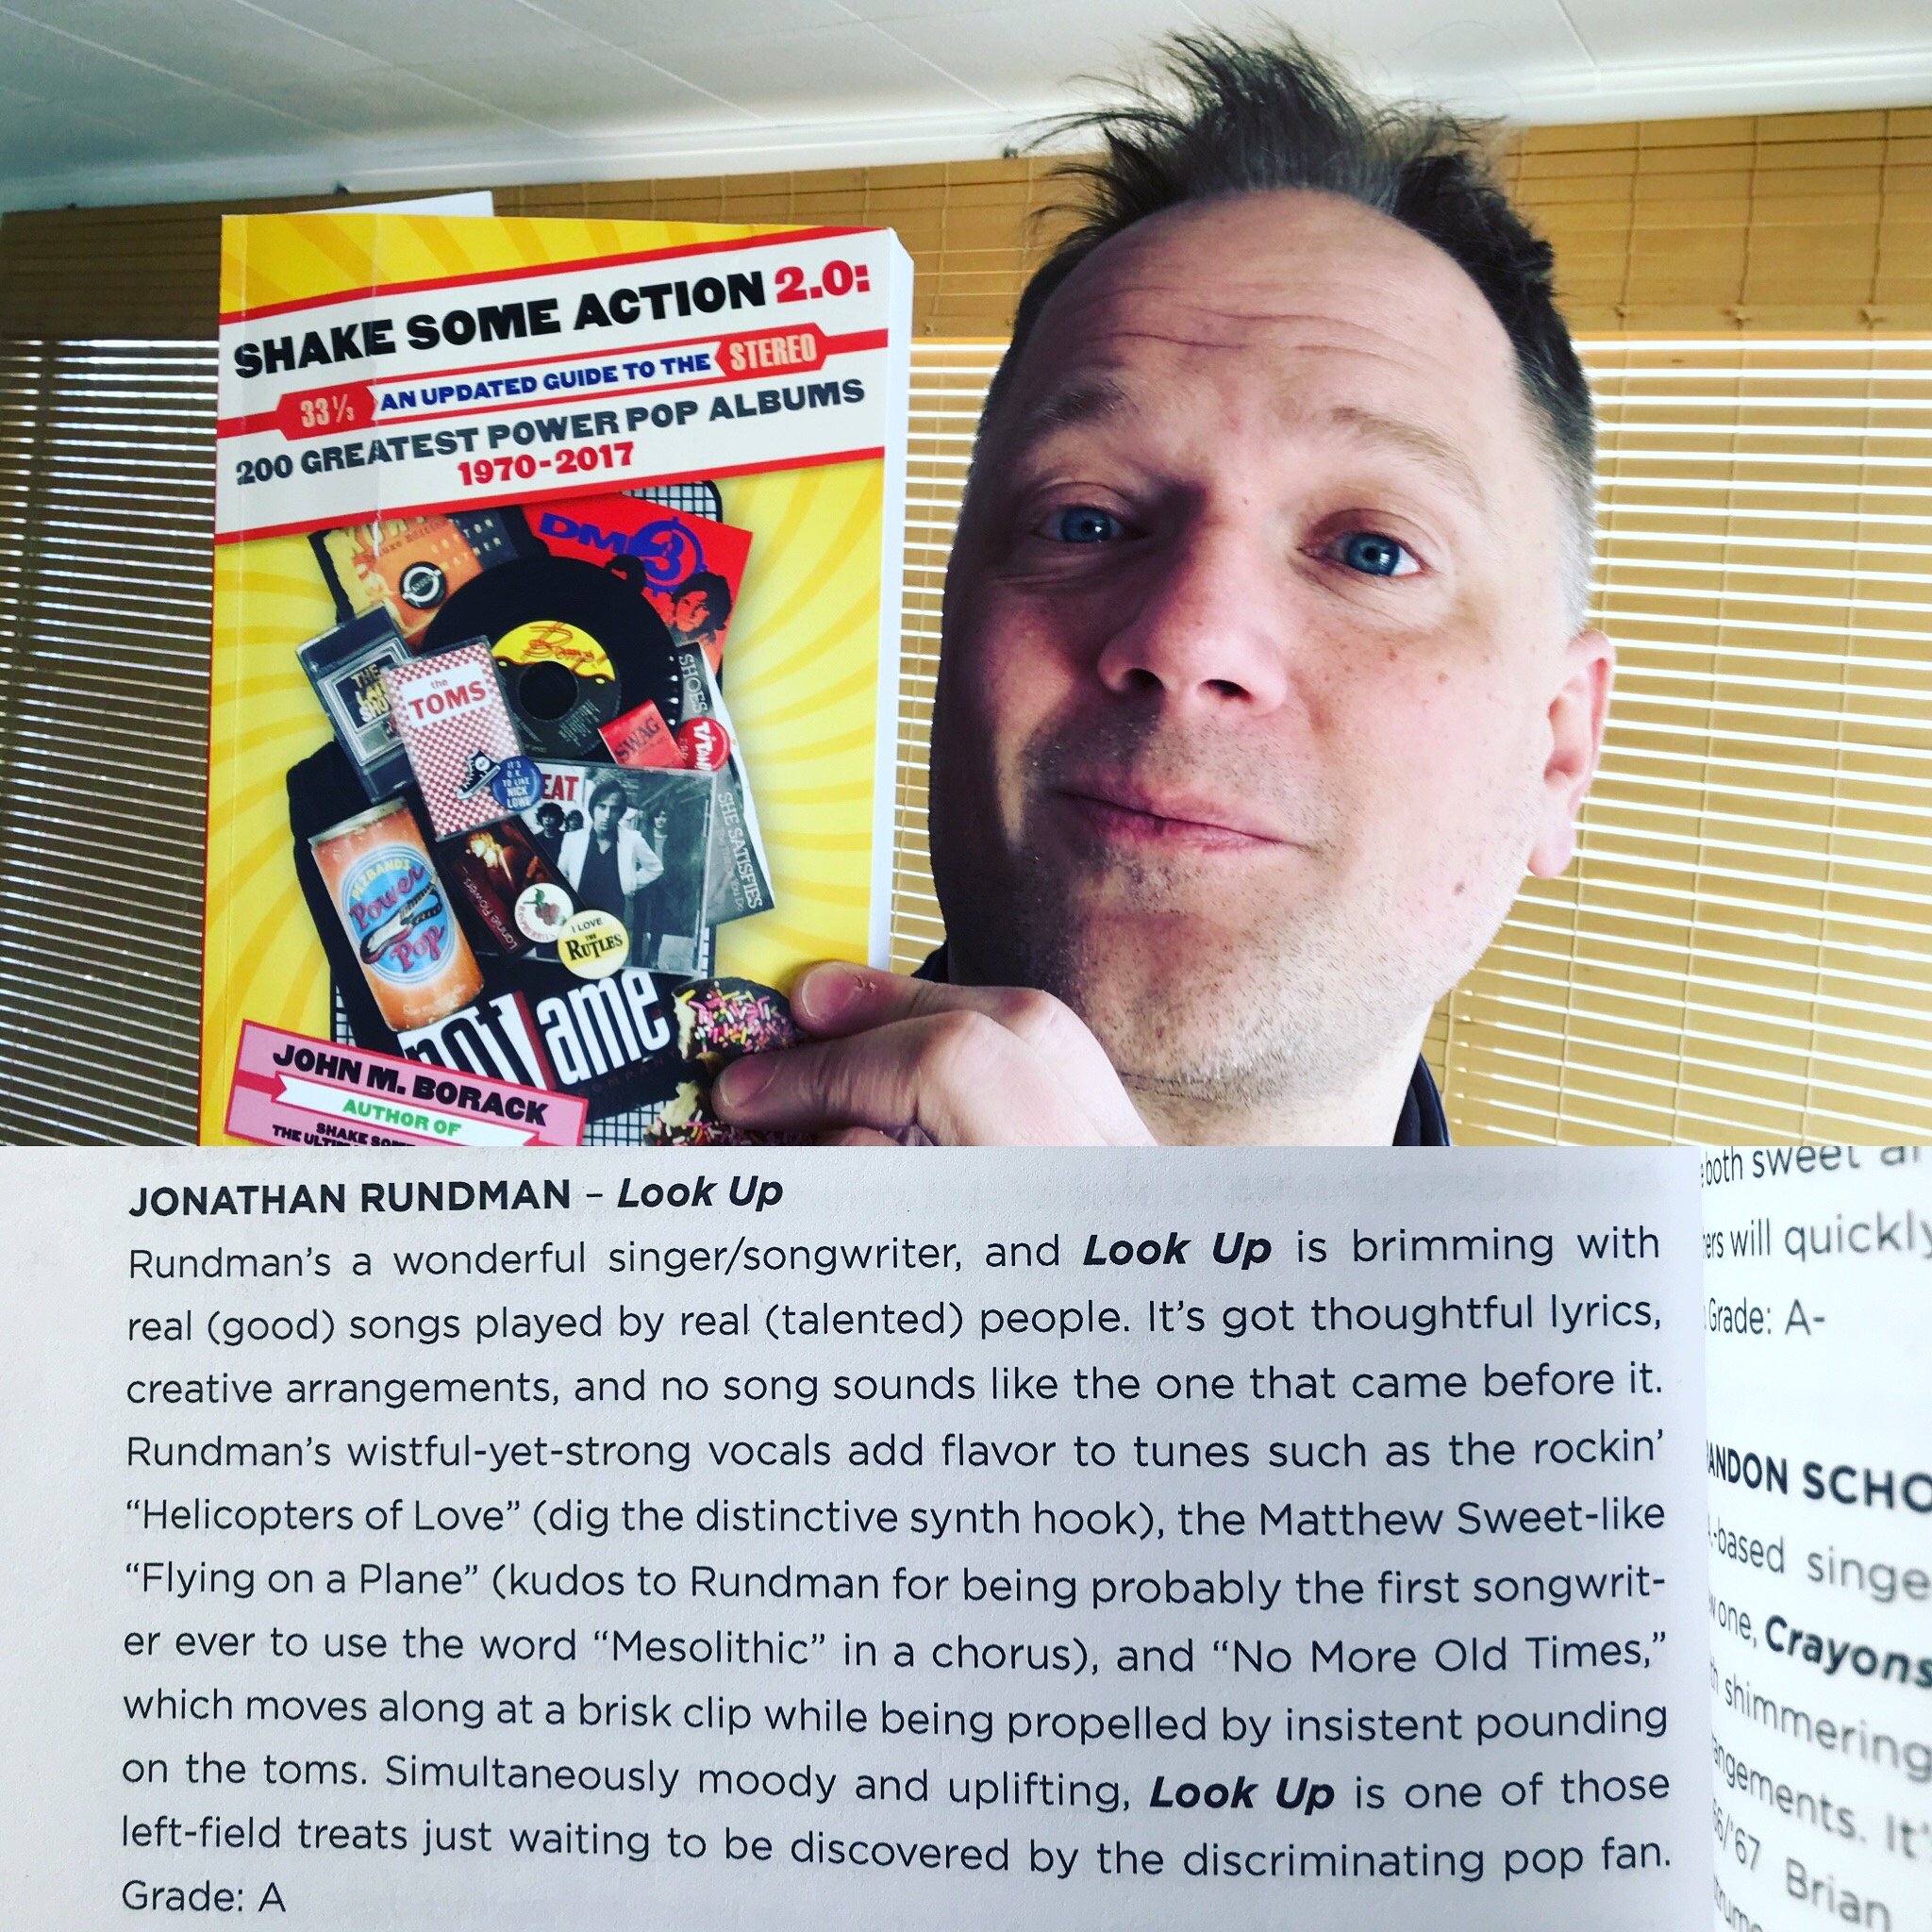 I'm in a book! - My 2015 album LOOK UP has gets an A-grade in the new power pop encyclopedia Shake Some Action 2.0.It's an honor to be included in this book with some of my favorite artists such as Parthenon Huxley, Jason Falkner, and Matthew Sweet!